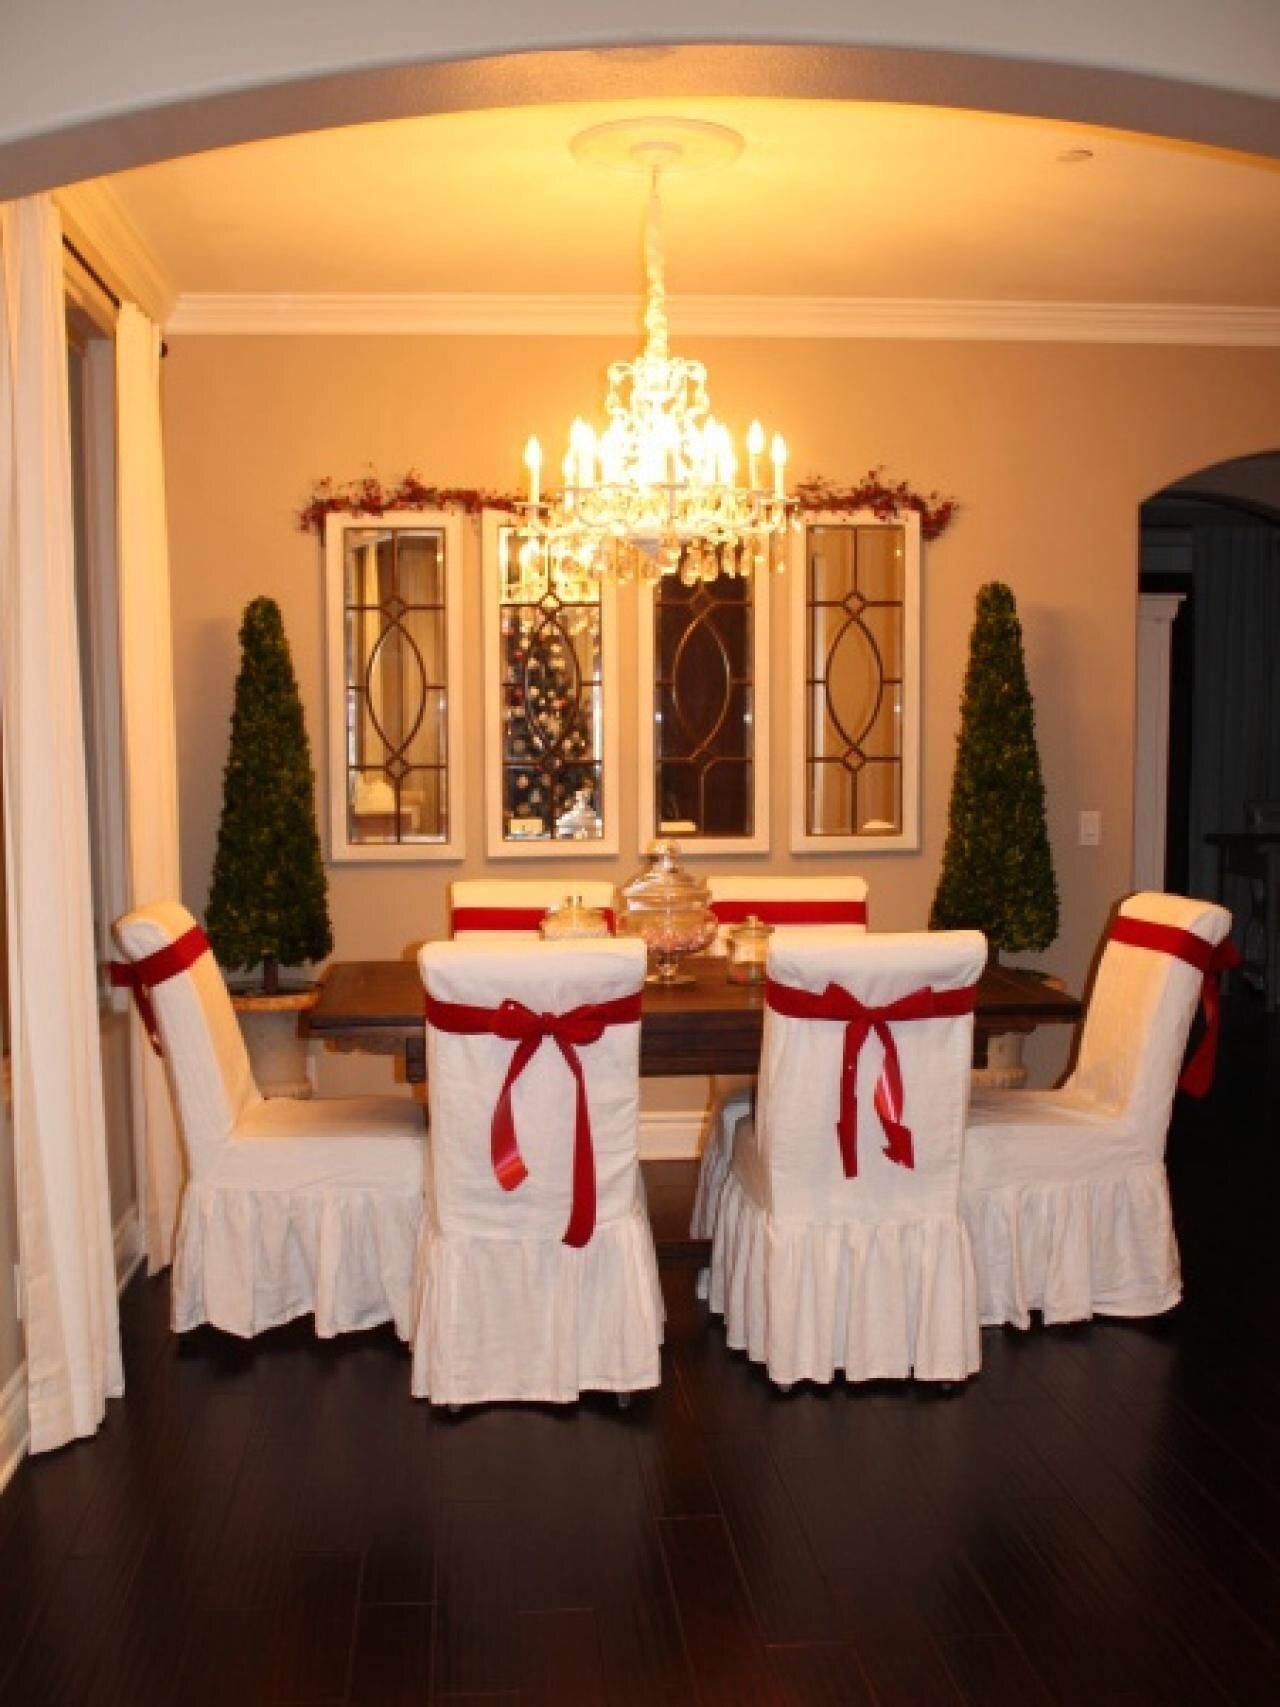 Dining Room Table Toppers Stunning Bows Around Chairs  Almost A Crafty Idea Pinterest  Crafty Review